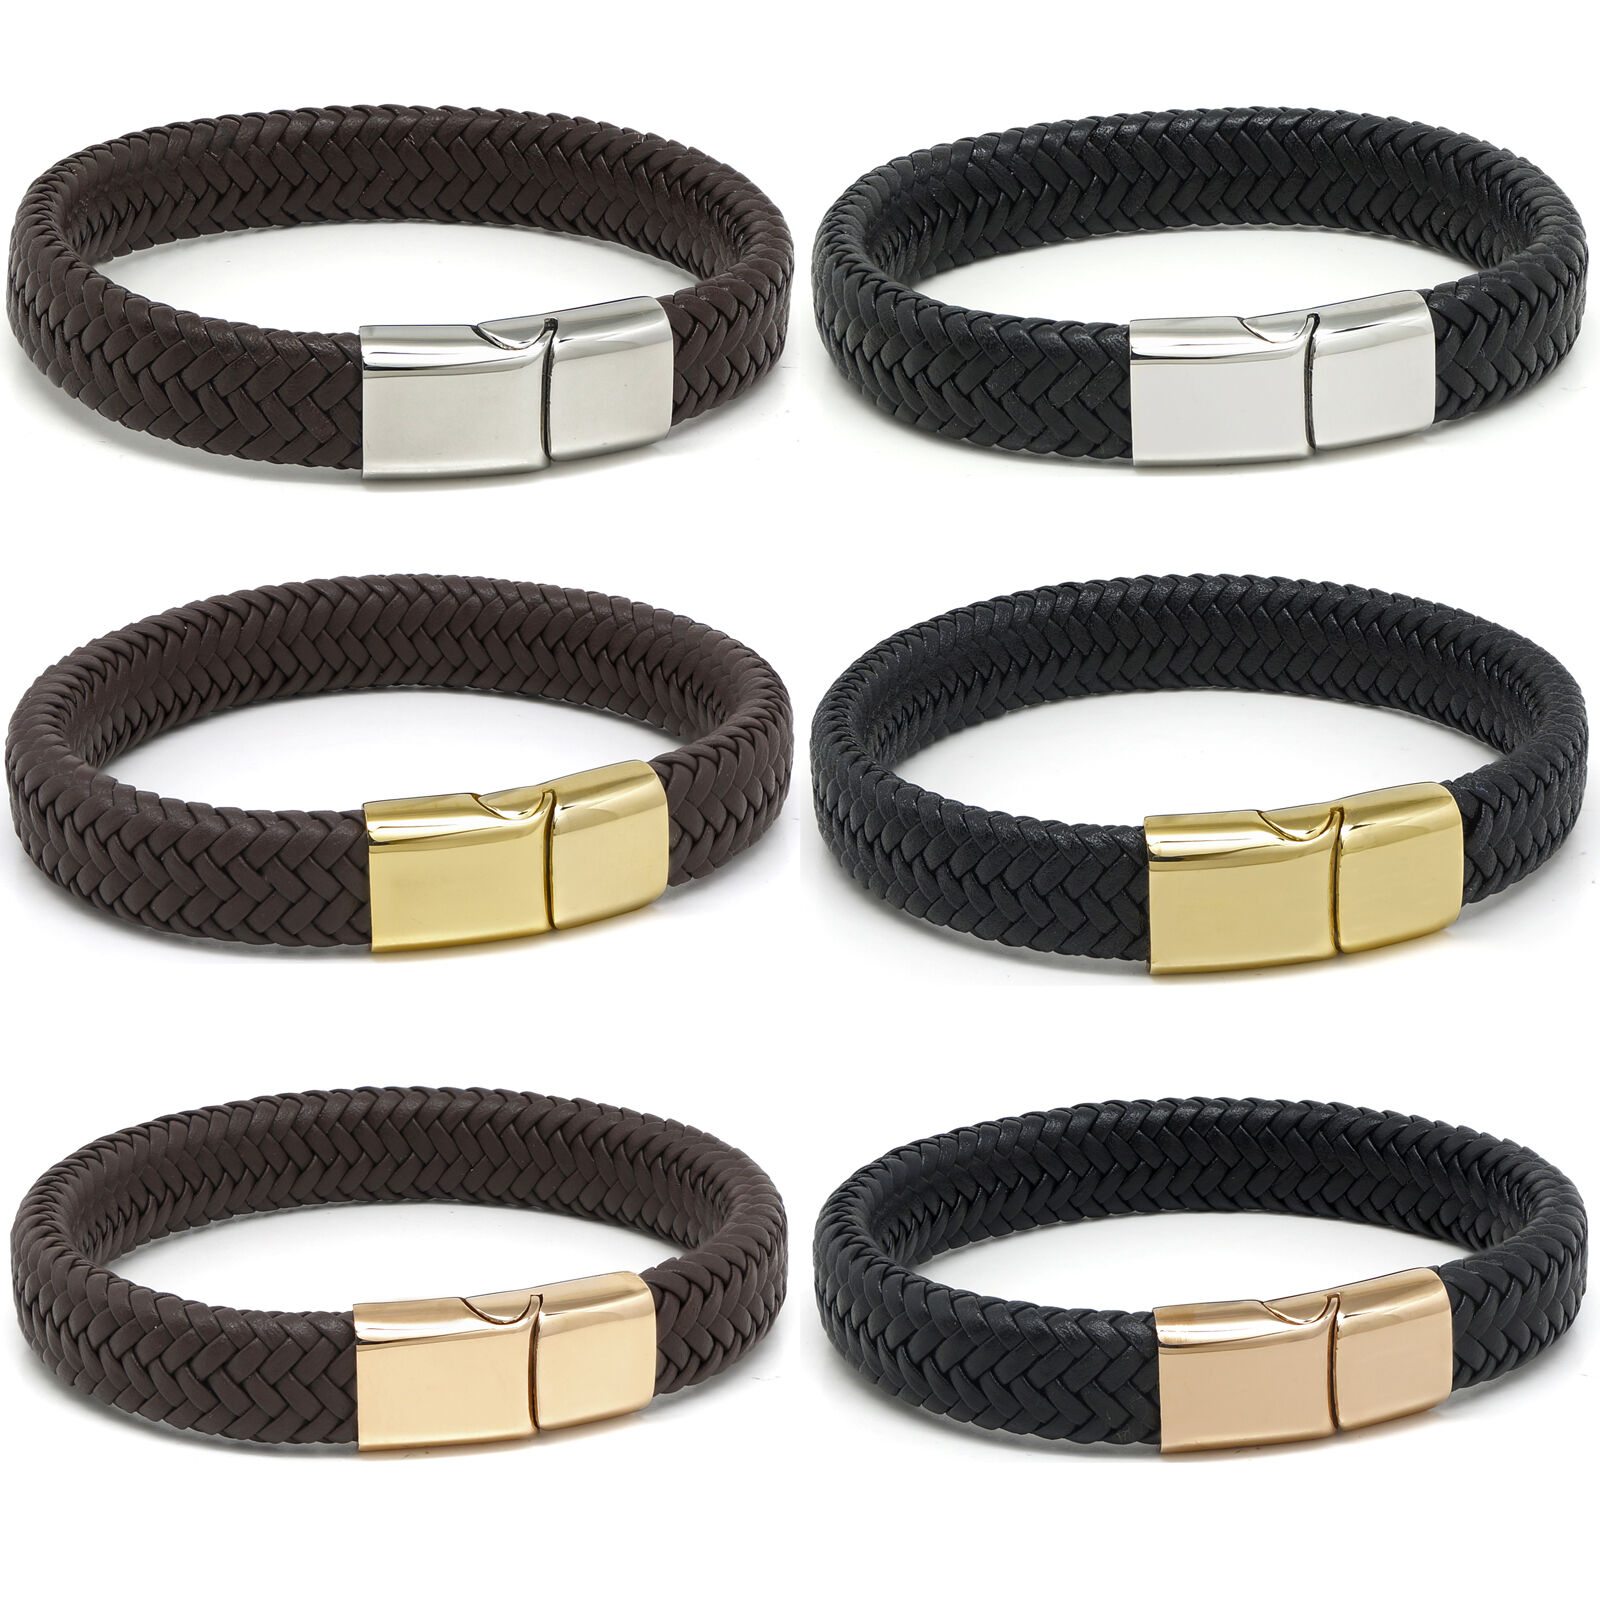 Leather Bracelet or Necklace Braided Steel Clasp Triple Wrap TOP QUALITY A141 Wristbands